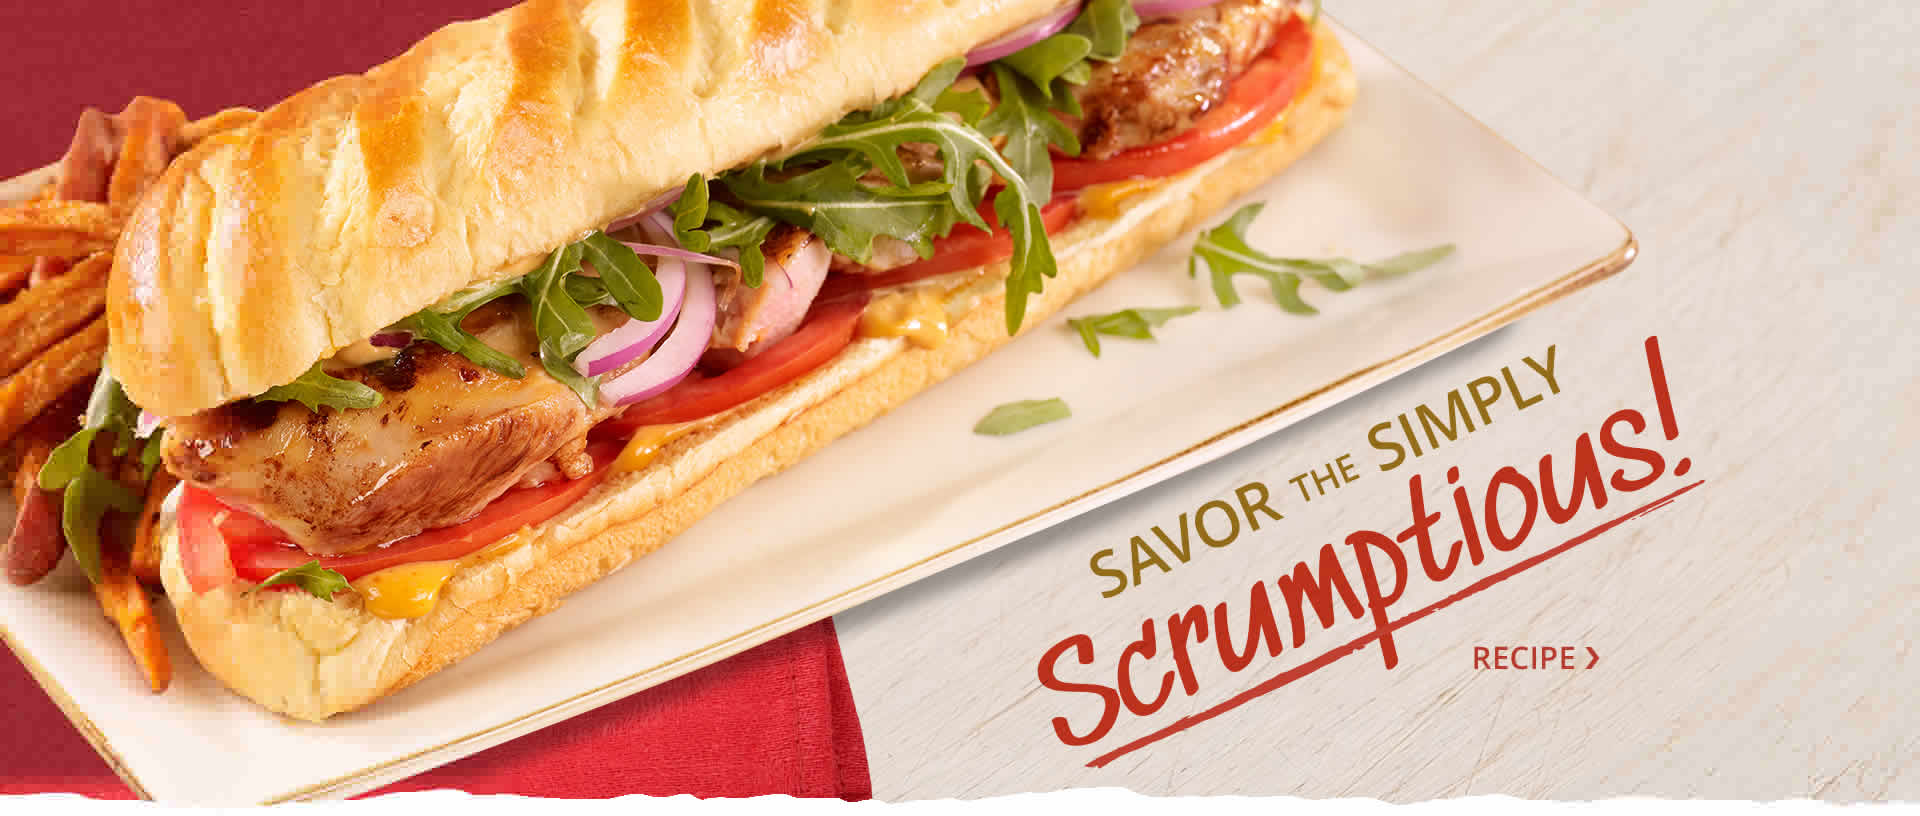 Savor the Simply Scrumptious with this Smoky Sweet Sub Recipe